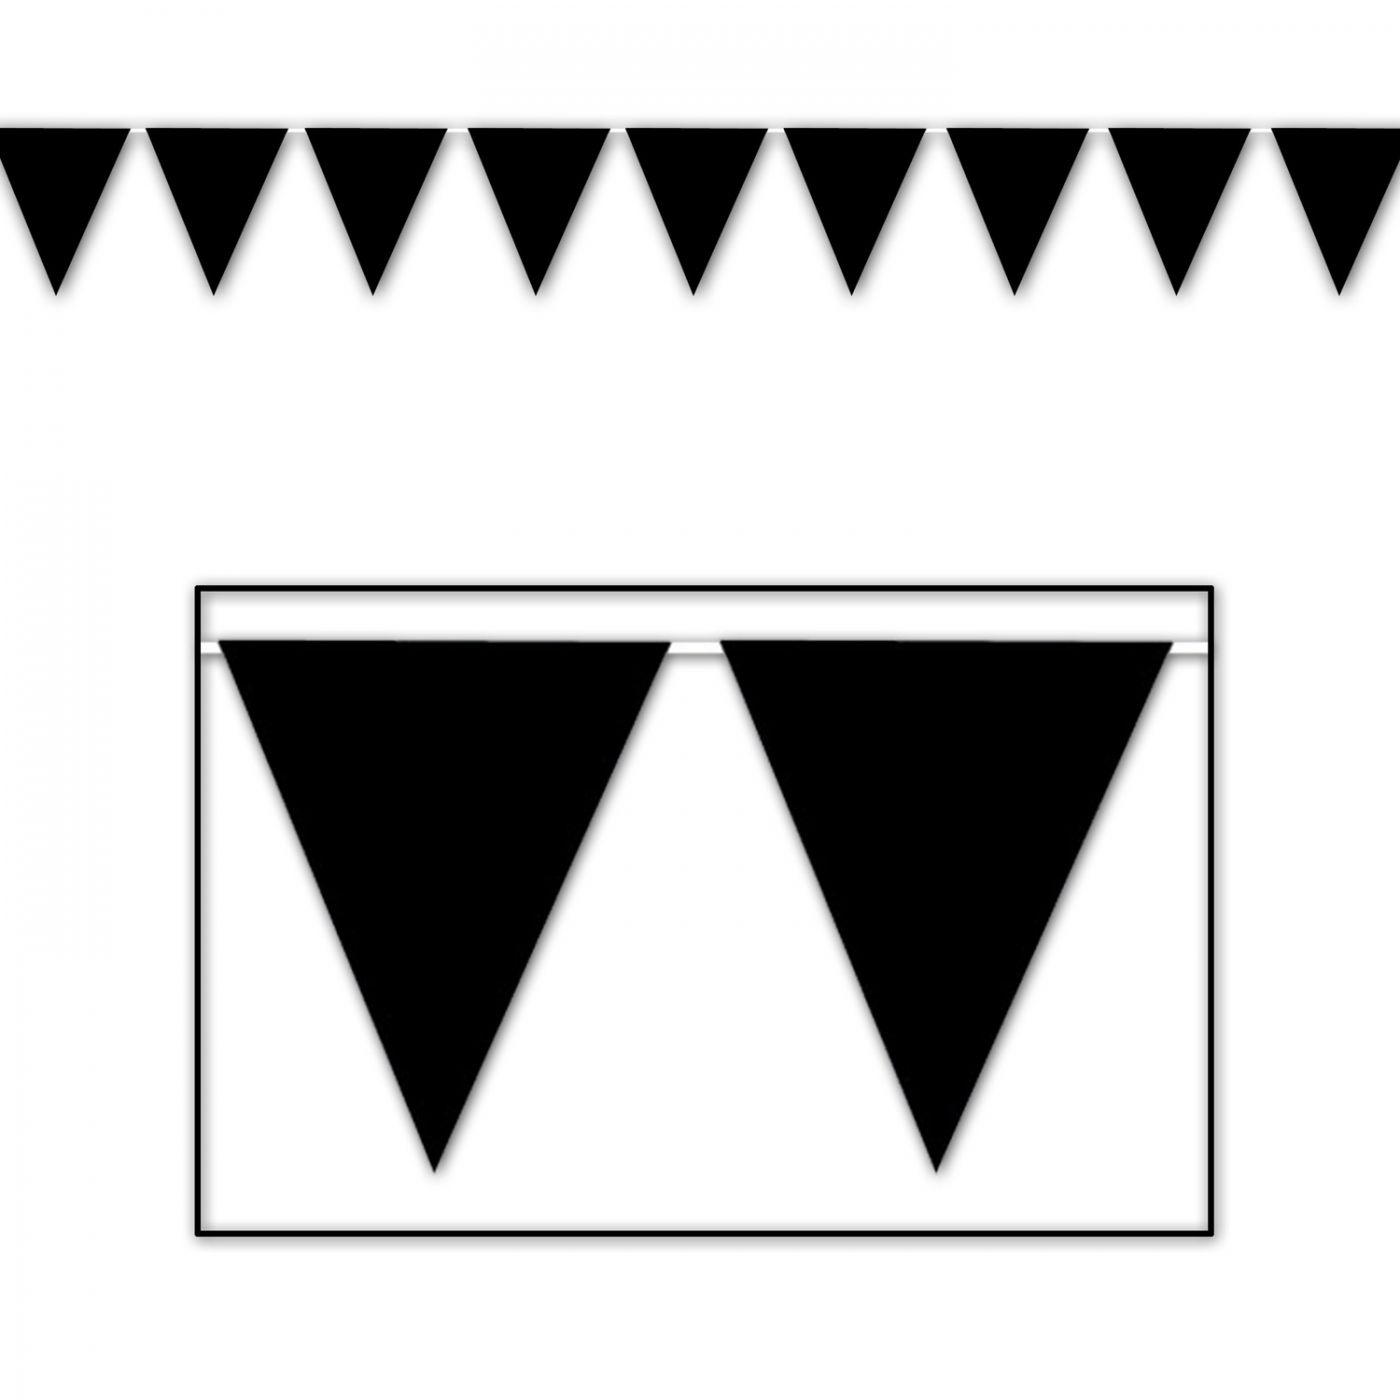 Image of Black Pennant Banner